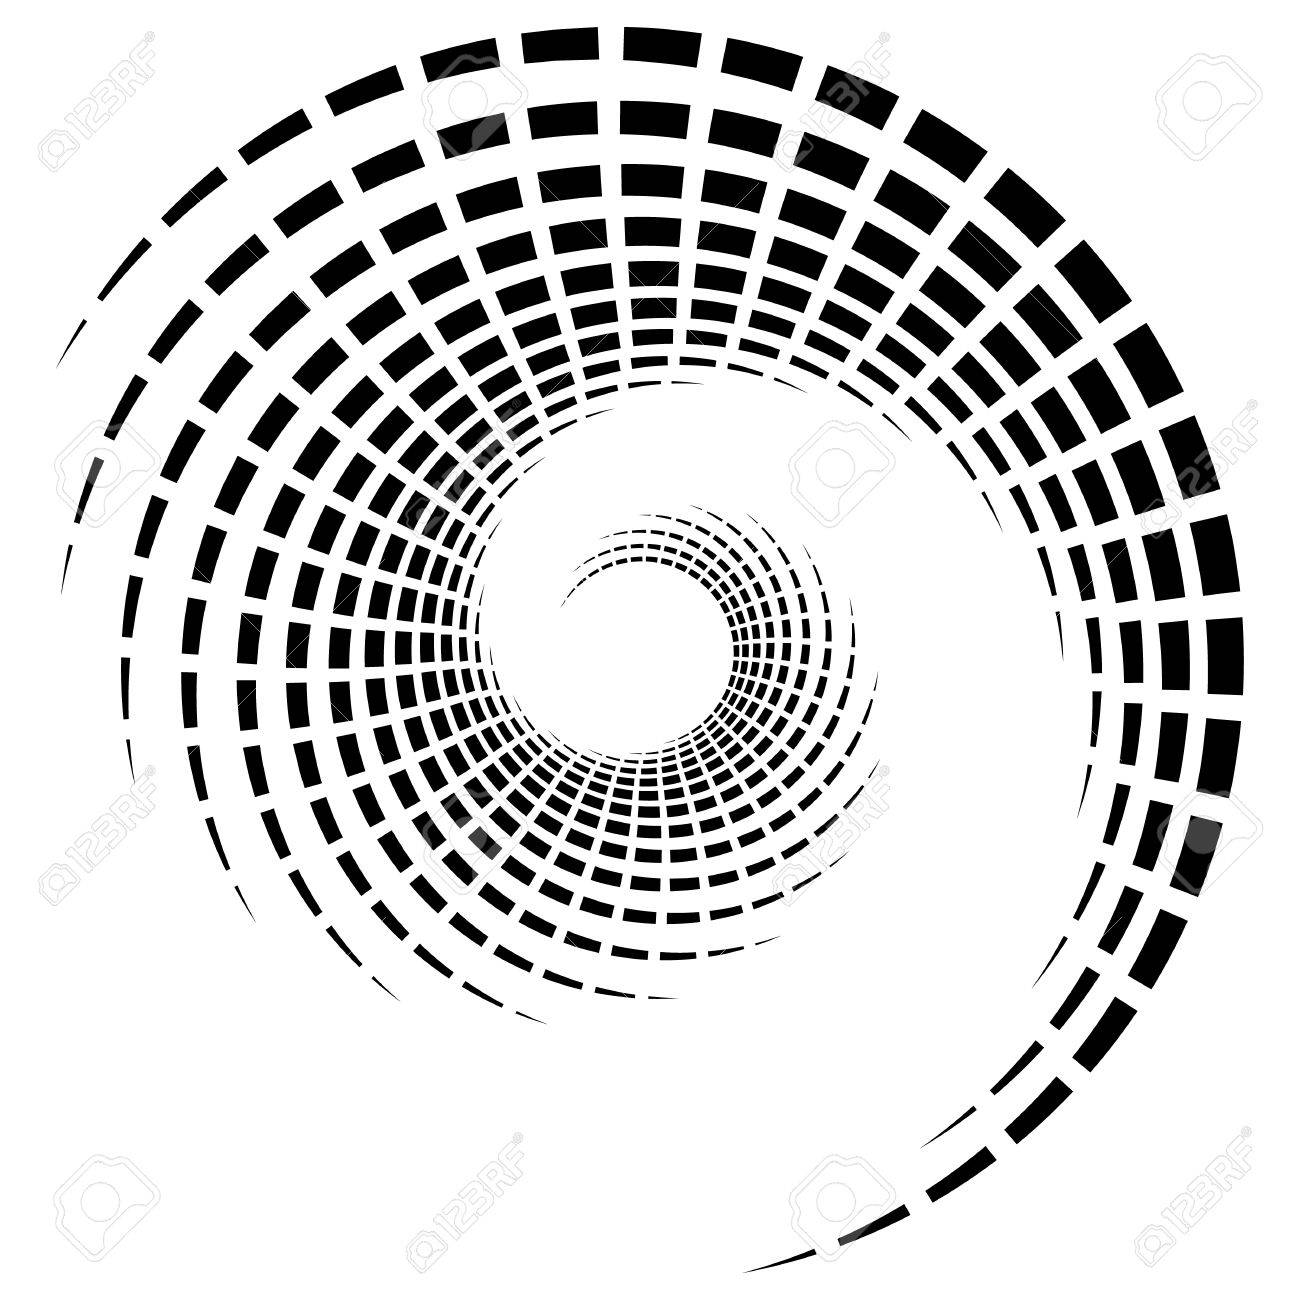 Abstract geometric spiral, ripple element with circular, concentric lines. Abstract monochrome element - 75390824